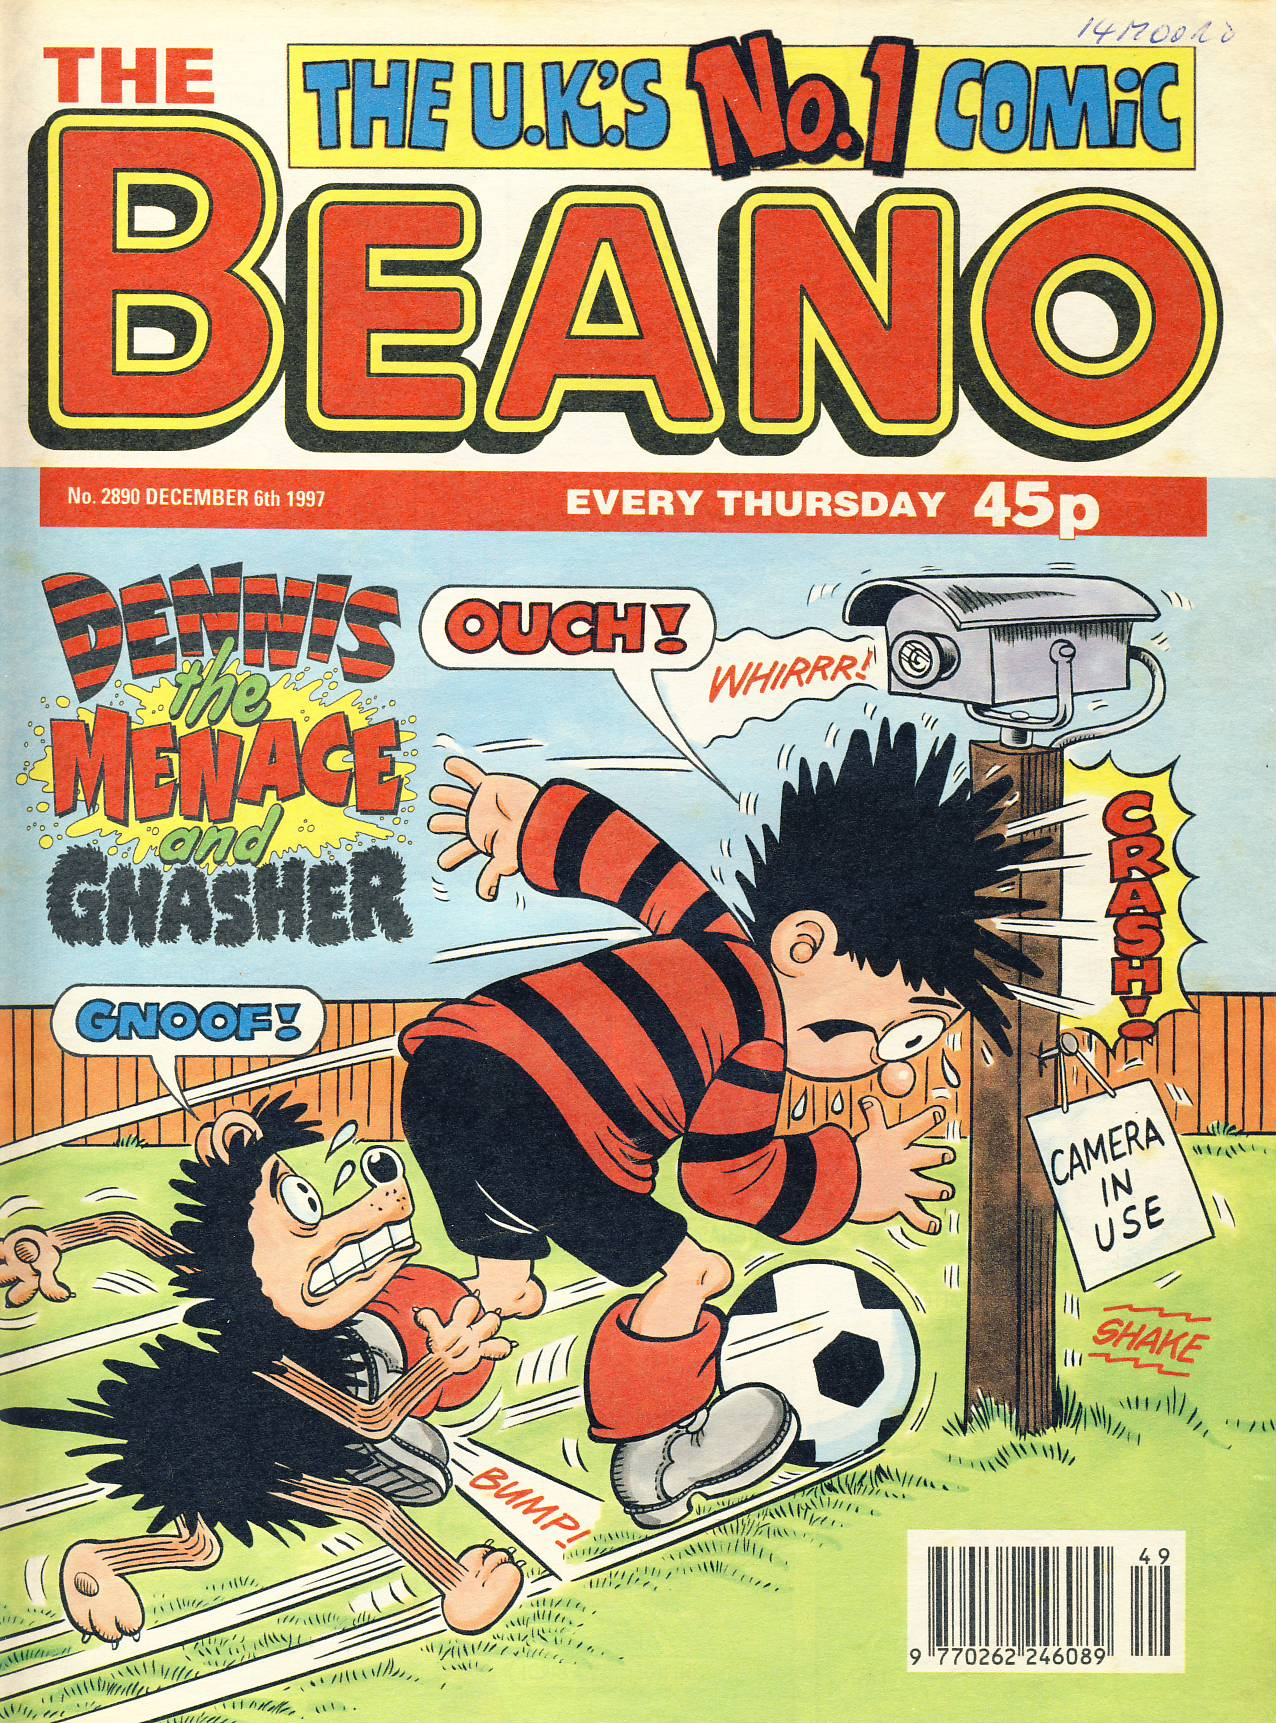 1997 December 6th BEANO vintage comic Good Gift Christmas Present Birthday Anniversary ref310a pre-owned item in good read condition.